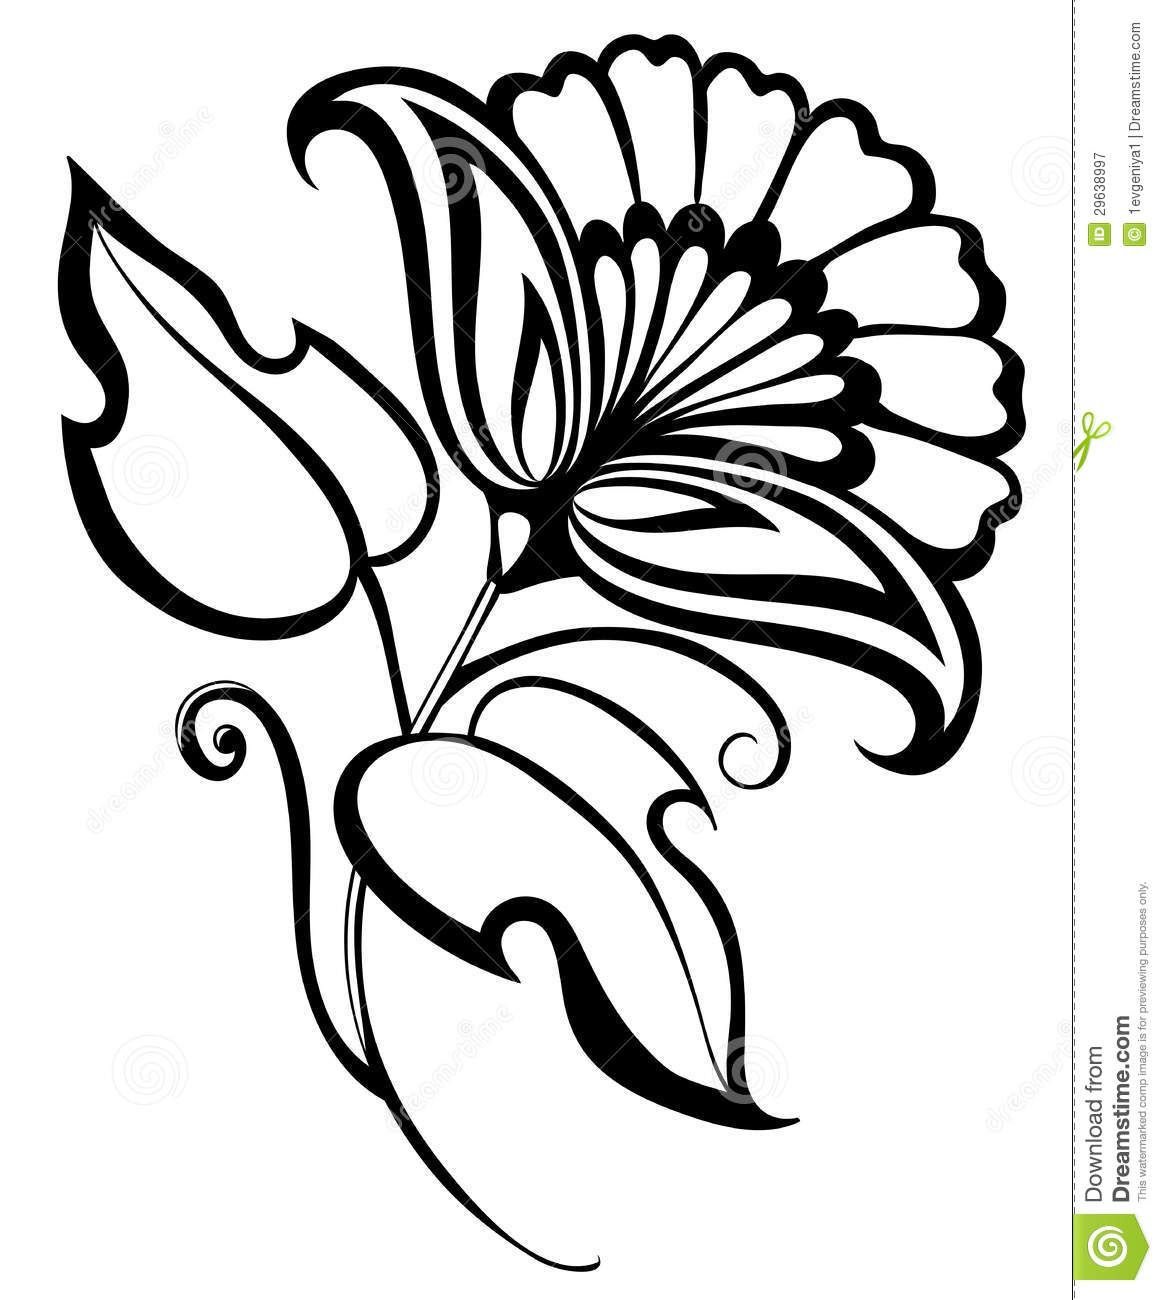 1162x1300 Sunflower Drawing Black And White Pencil Flower Images Vine